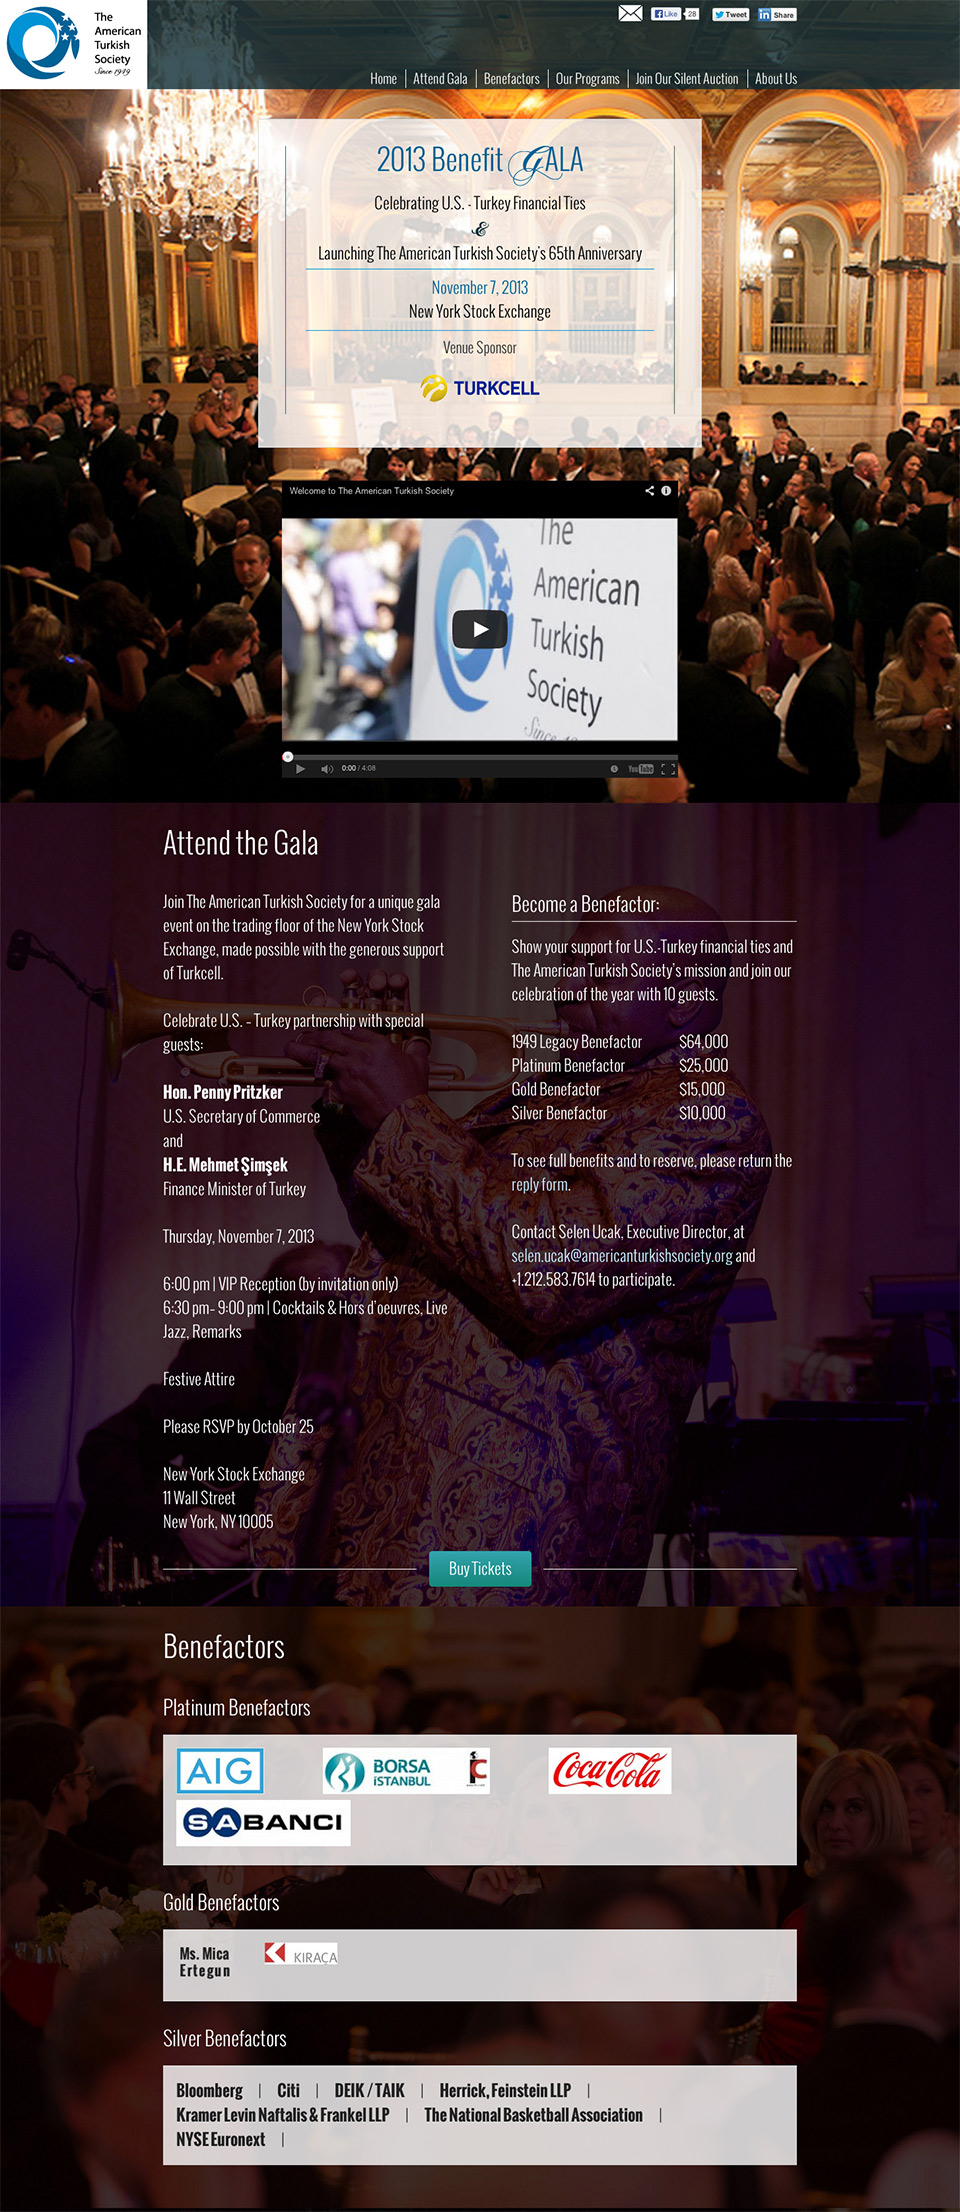 American Turkish Society Gala: Fundraising Microsite for Annual Benefit